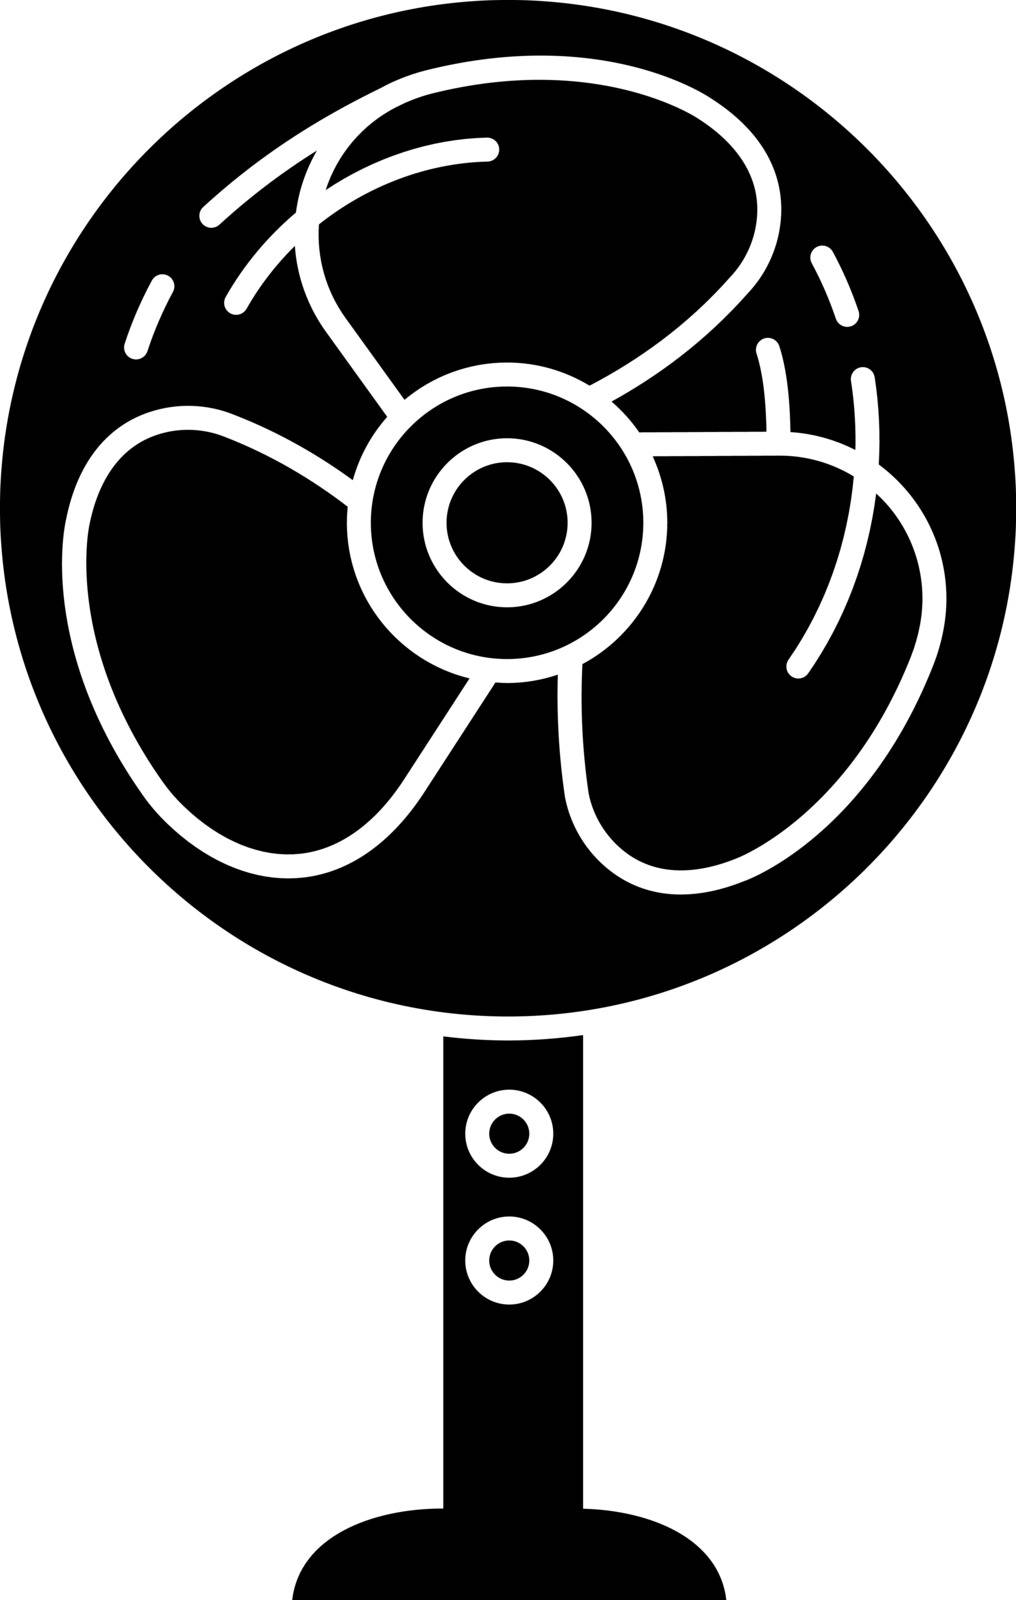 Stand floor fan glyph icon. Silhouette symbol. Home cooling fan. Household appliance. Negative space. Vector isolated illustration